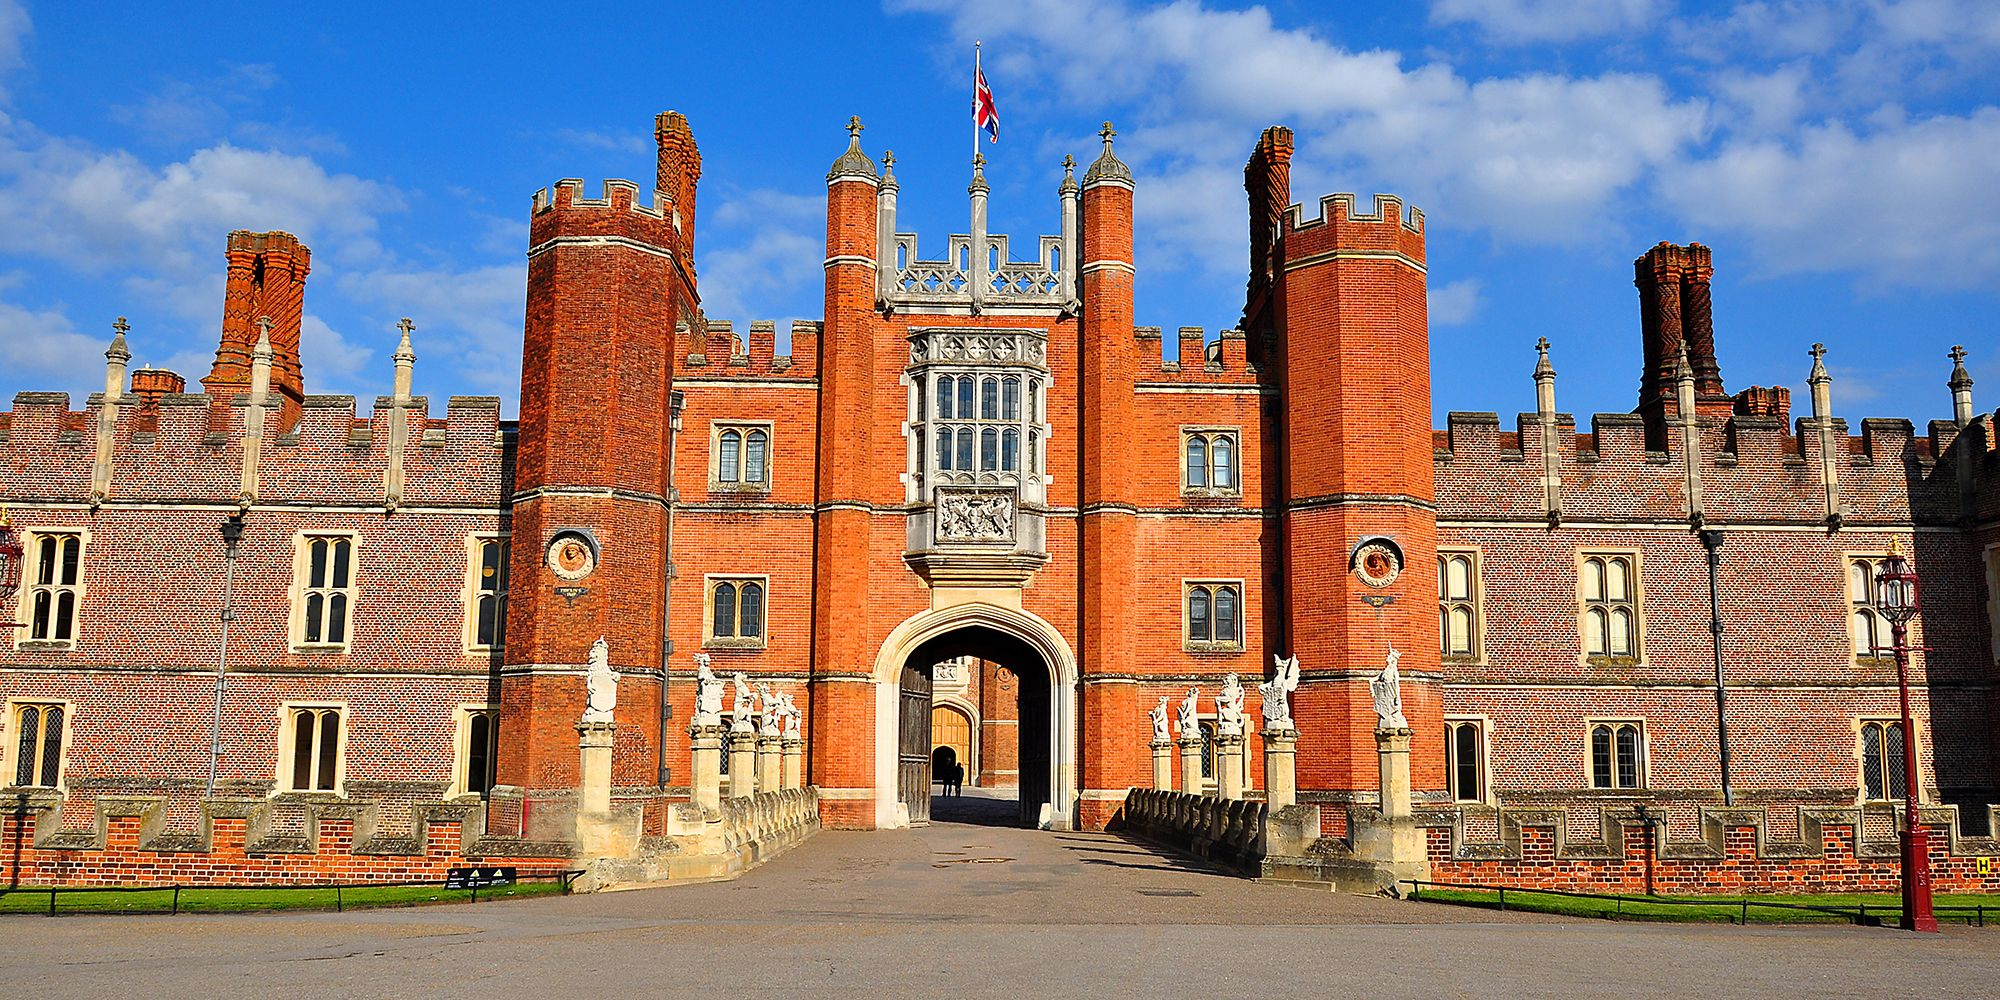 Hampton Court palace in London, UK